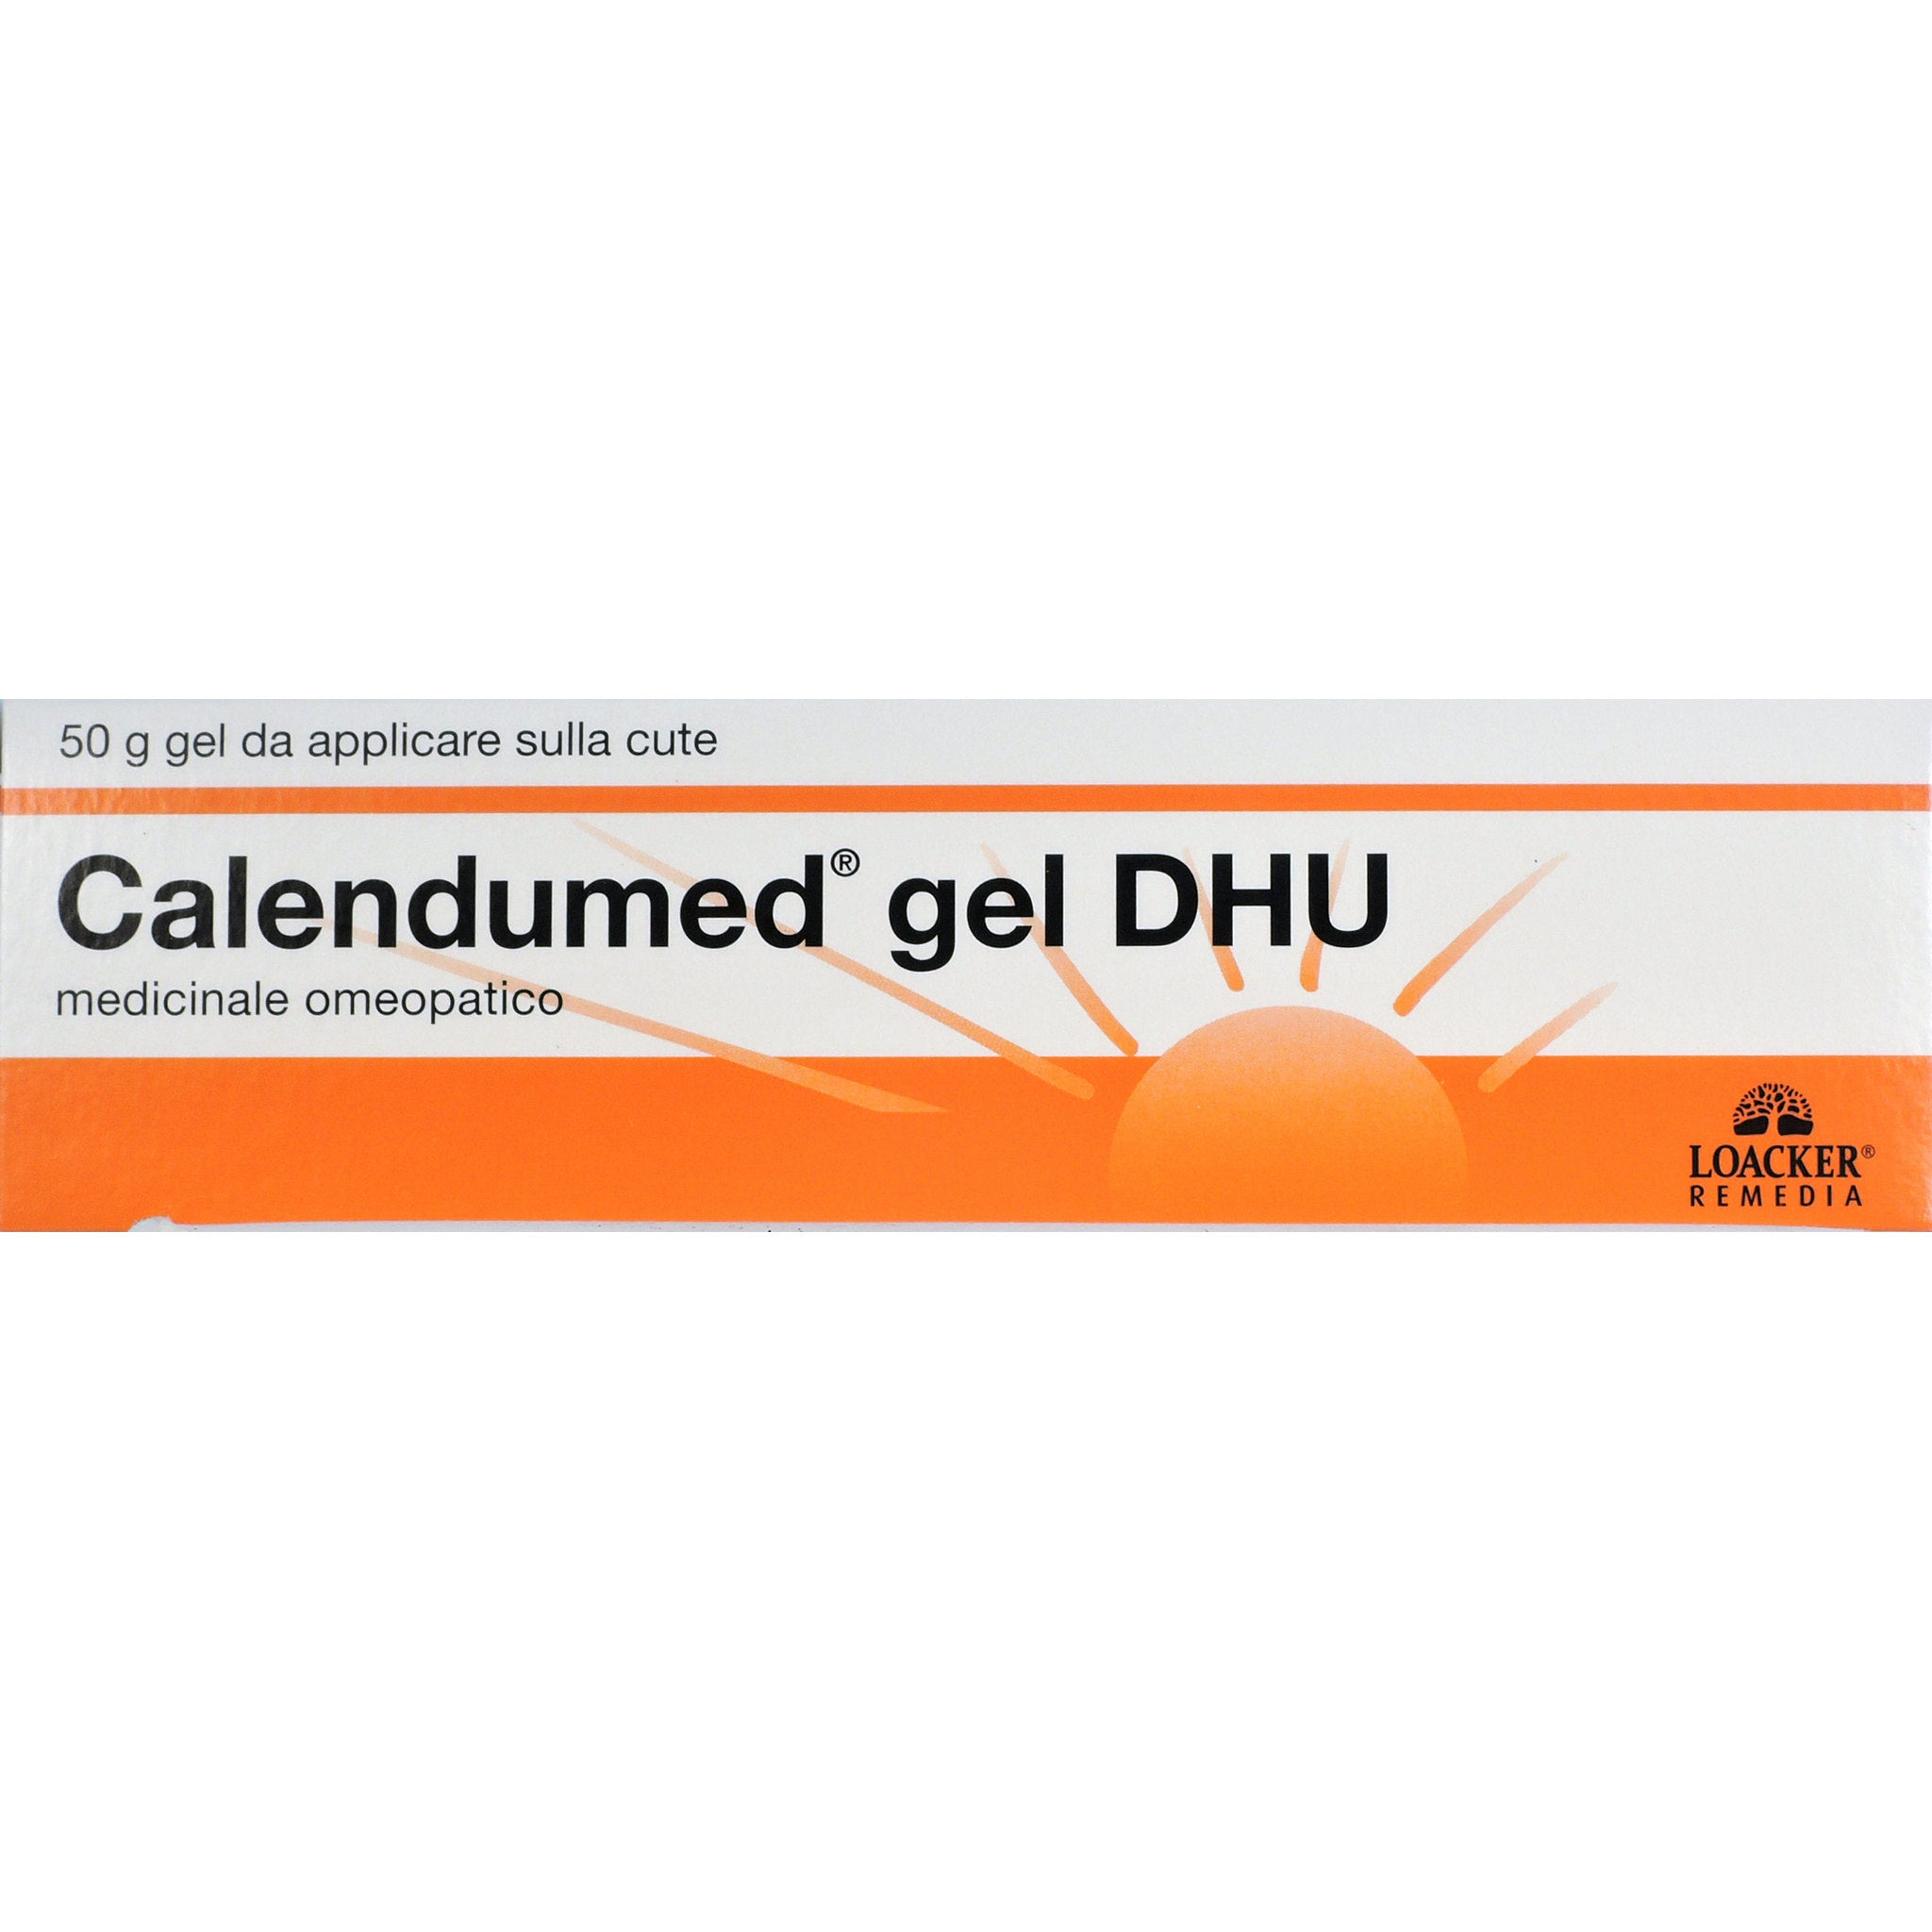 CALENDUMED 50G GEL DHU